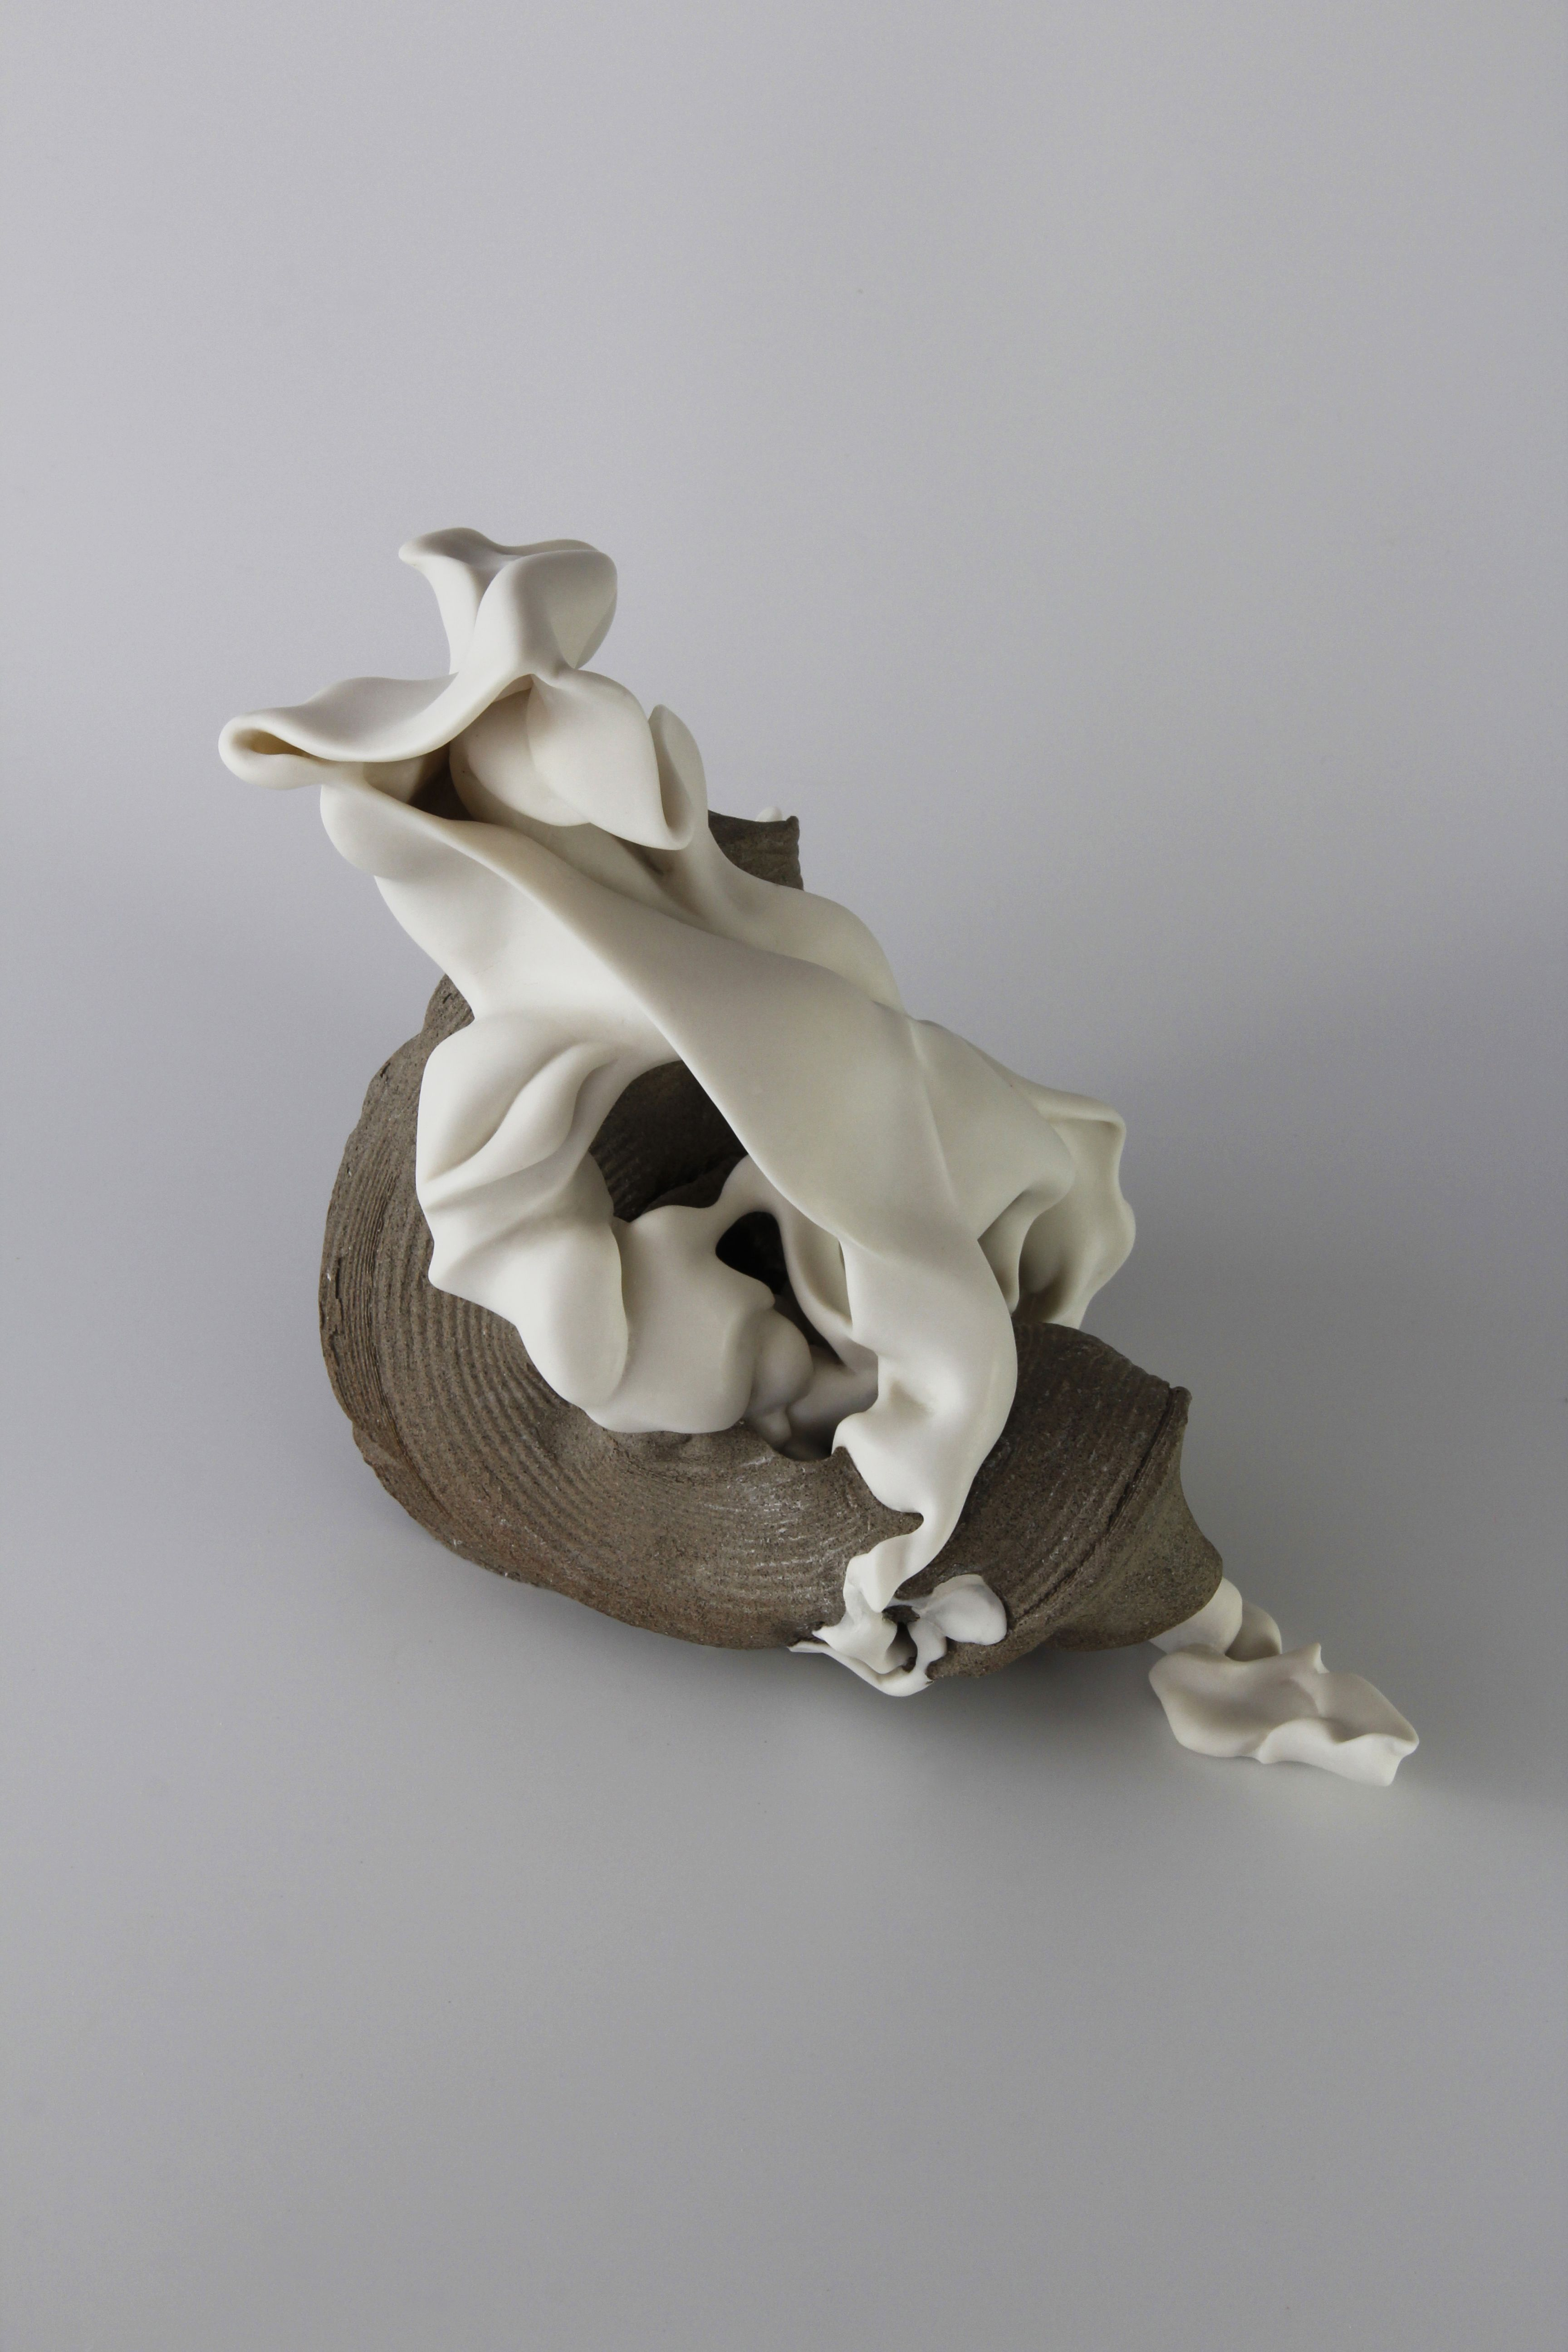 Relations 1,Sharon Brill,Sculpture